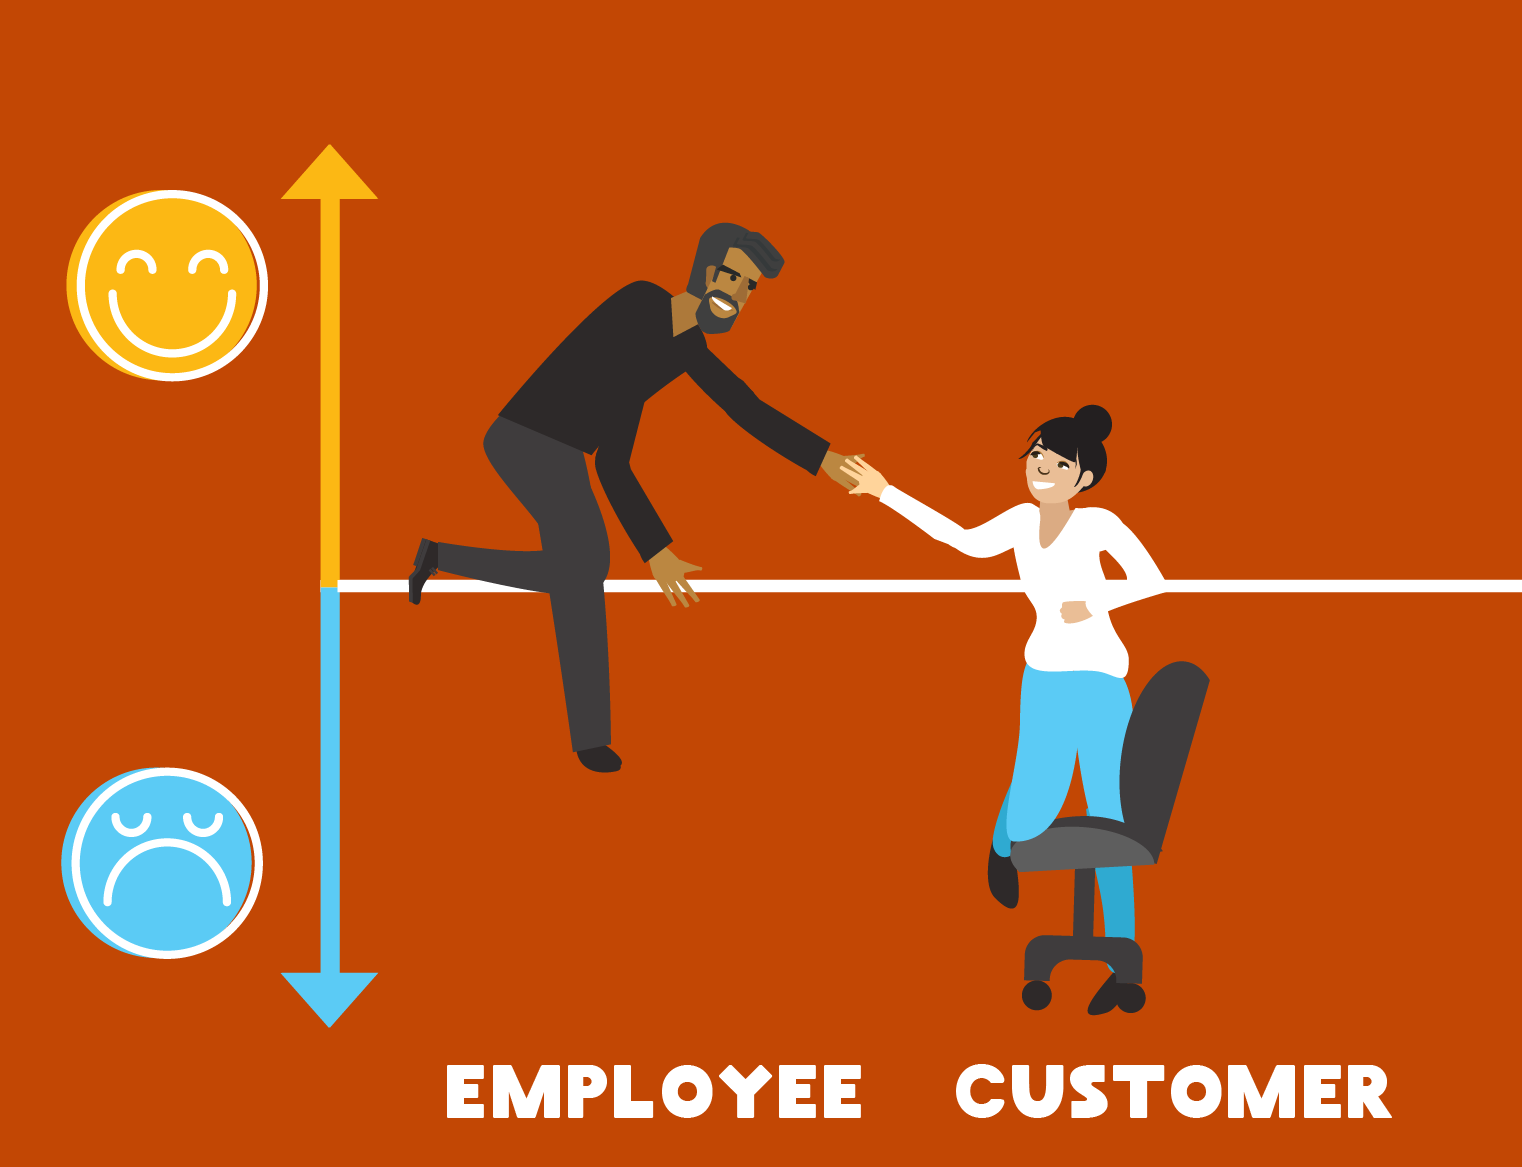 Illustration of a happy employee boosting customer happiness.